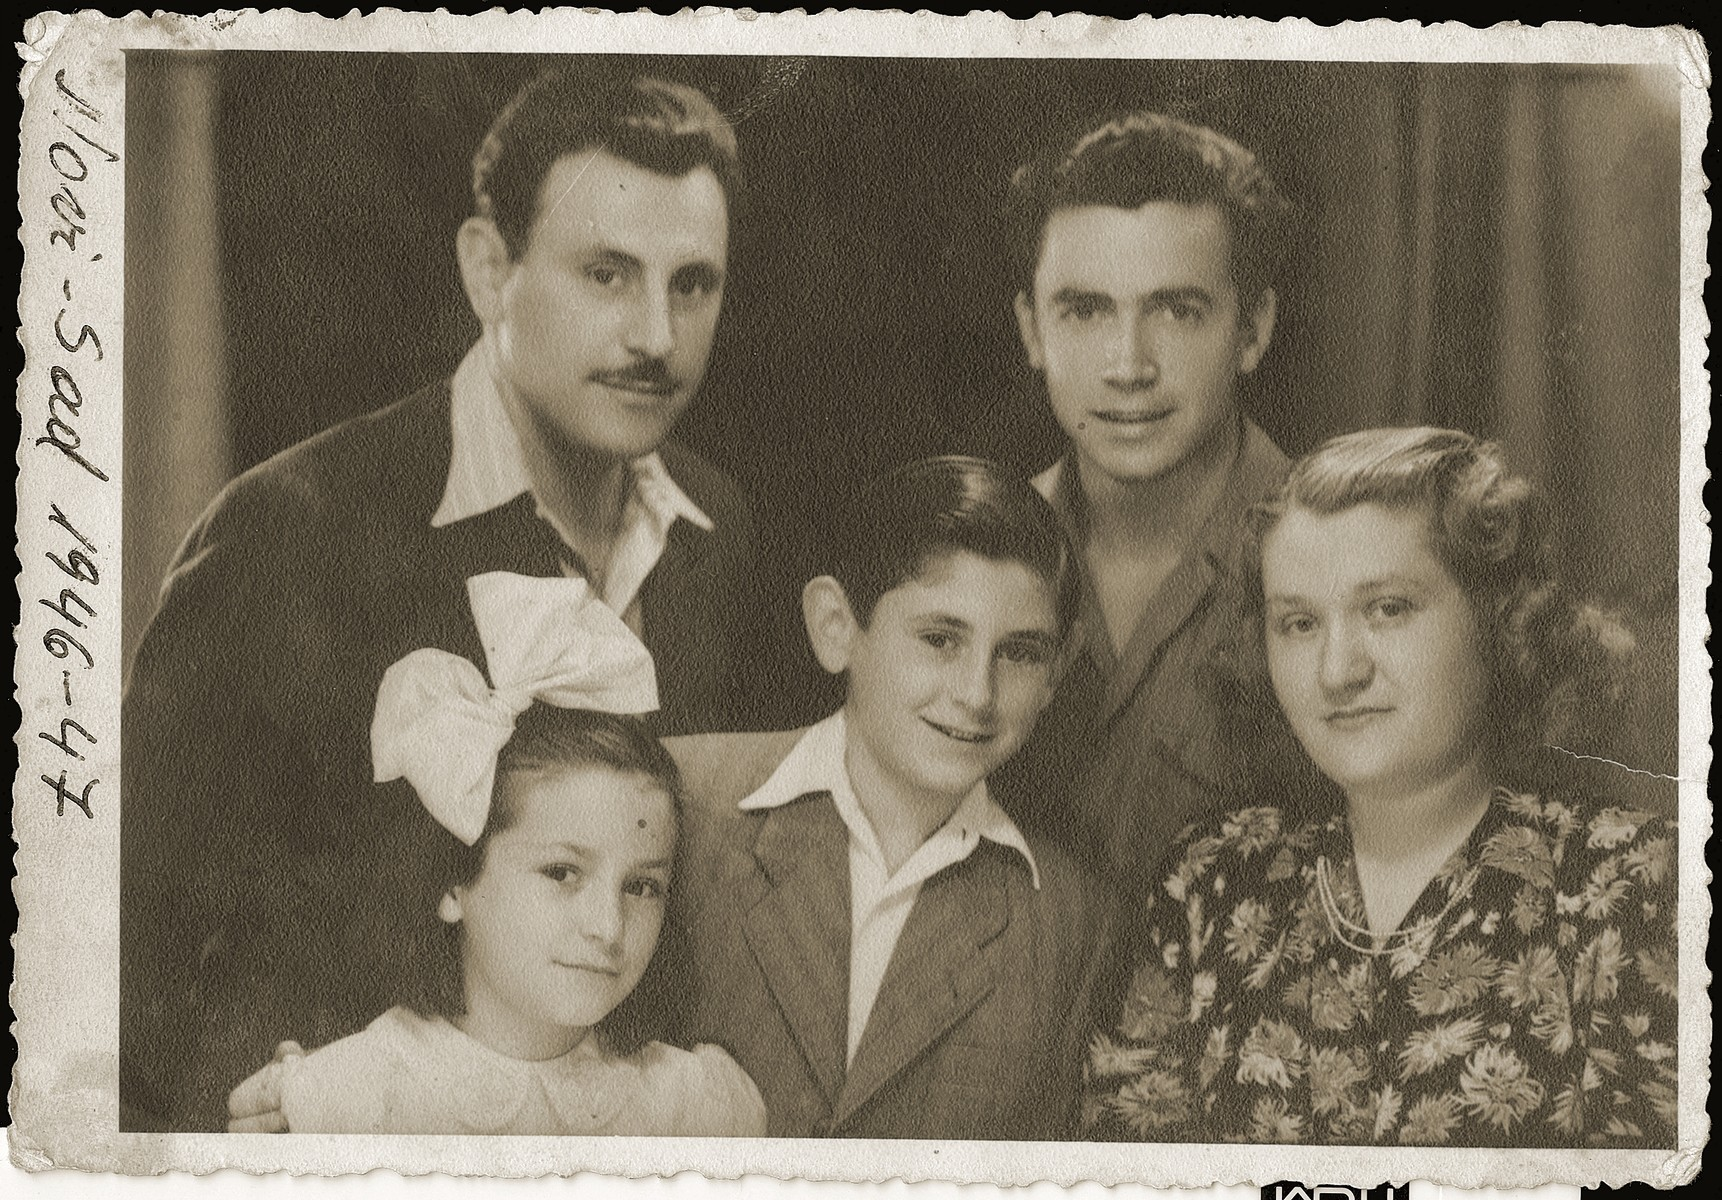 The Mandil family with their Albanian rescuer, Refik Veseli.  In 1990 Refik Veseli was recognized by Yad Vashem as one of the Righteous Among the Nations.  Pictured in the front row (from left to right) are: Irena, Gavra and Gabriela (Ela) Mandil.  In the back row (from left to right) are: Mosa (Moshe) Mandil and Refik Veseli.